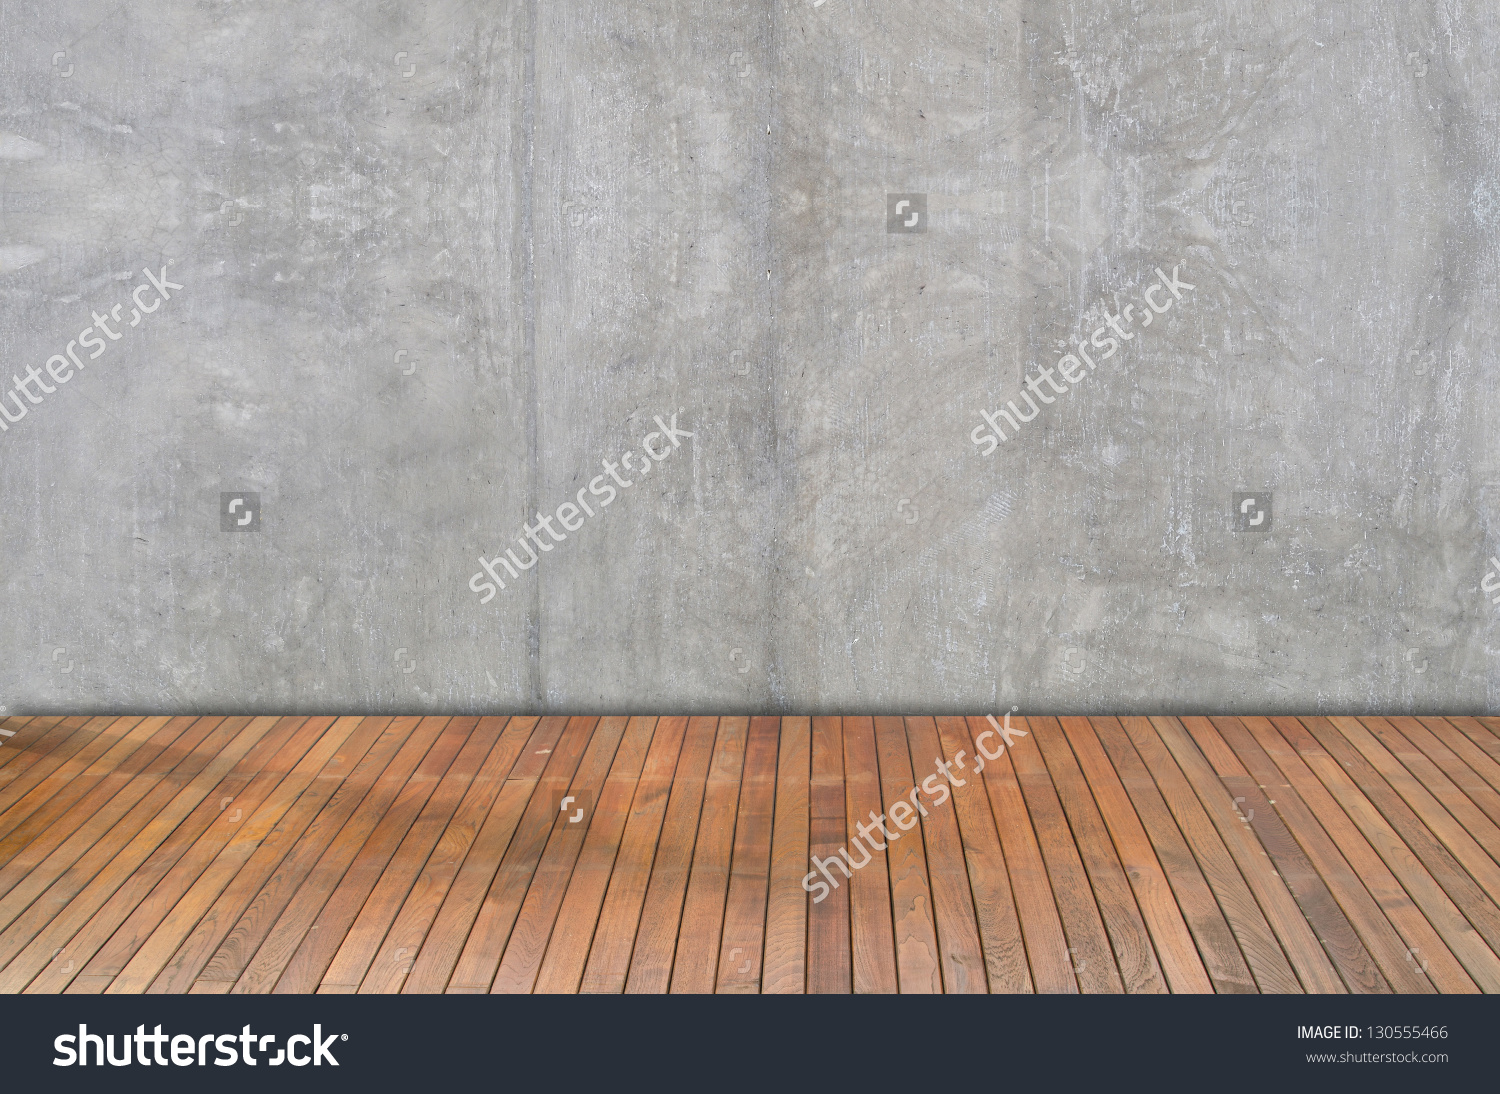 Wooden Floor And Plaster Walls Background Stock Photo 130555466.